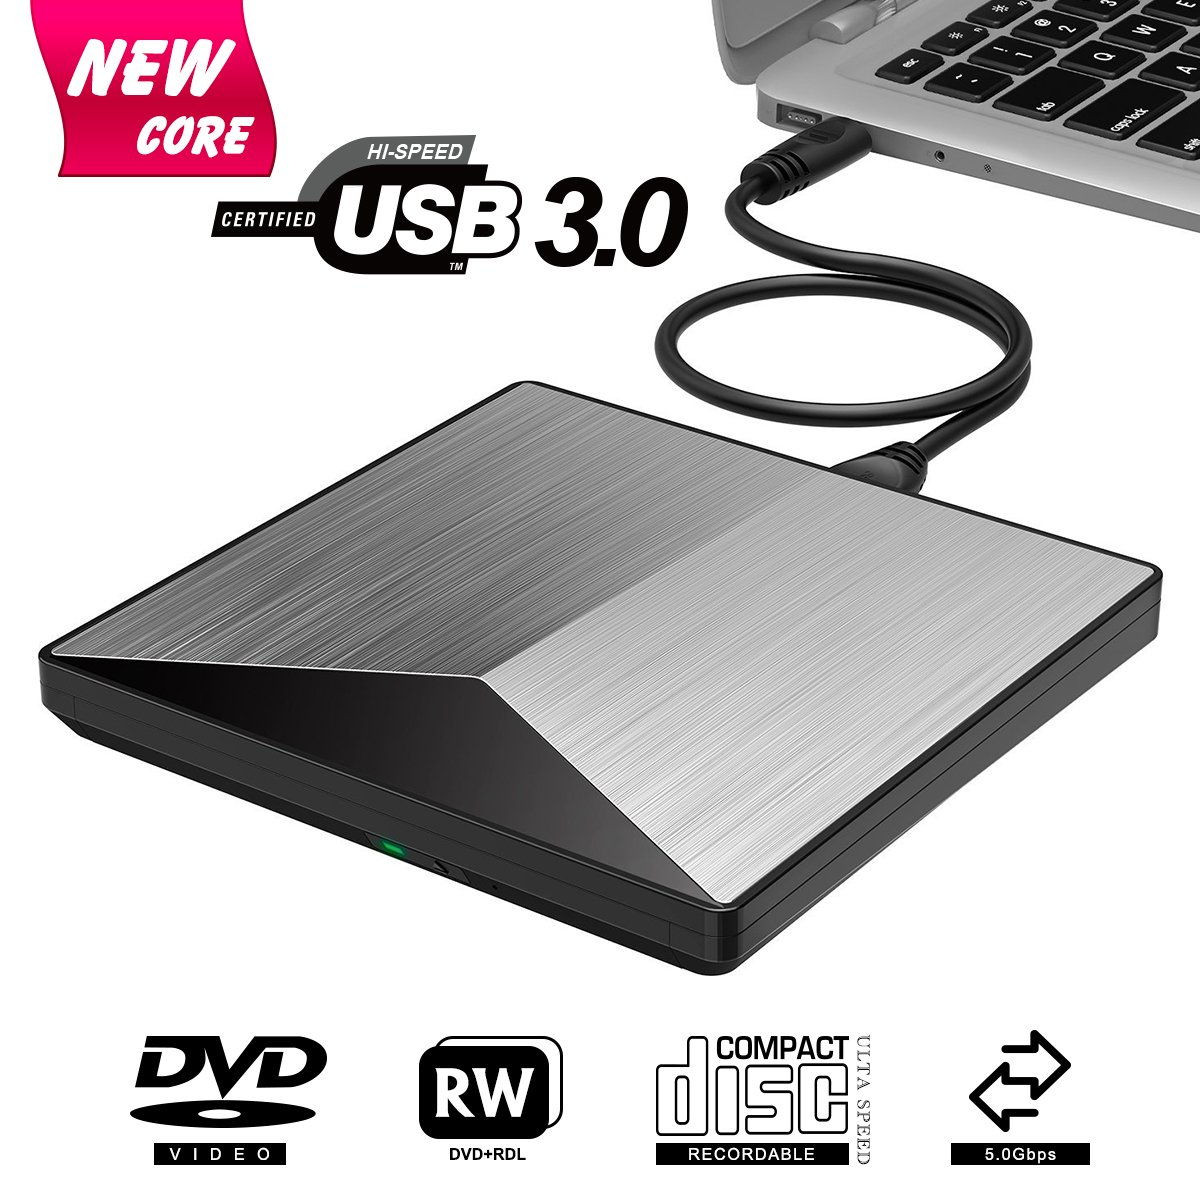 BOSLISA External DVD Drive, USB 3.0 CD DVD +/-RW Burner Rewriter Player, Optical DVD Superdrive High Speed Data Transfer for Laptop Macbook Desktop Computer Support for Windows10/8/7/Mac OS (Silver)